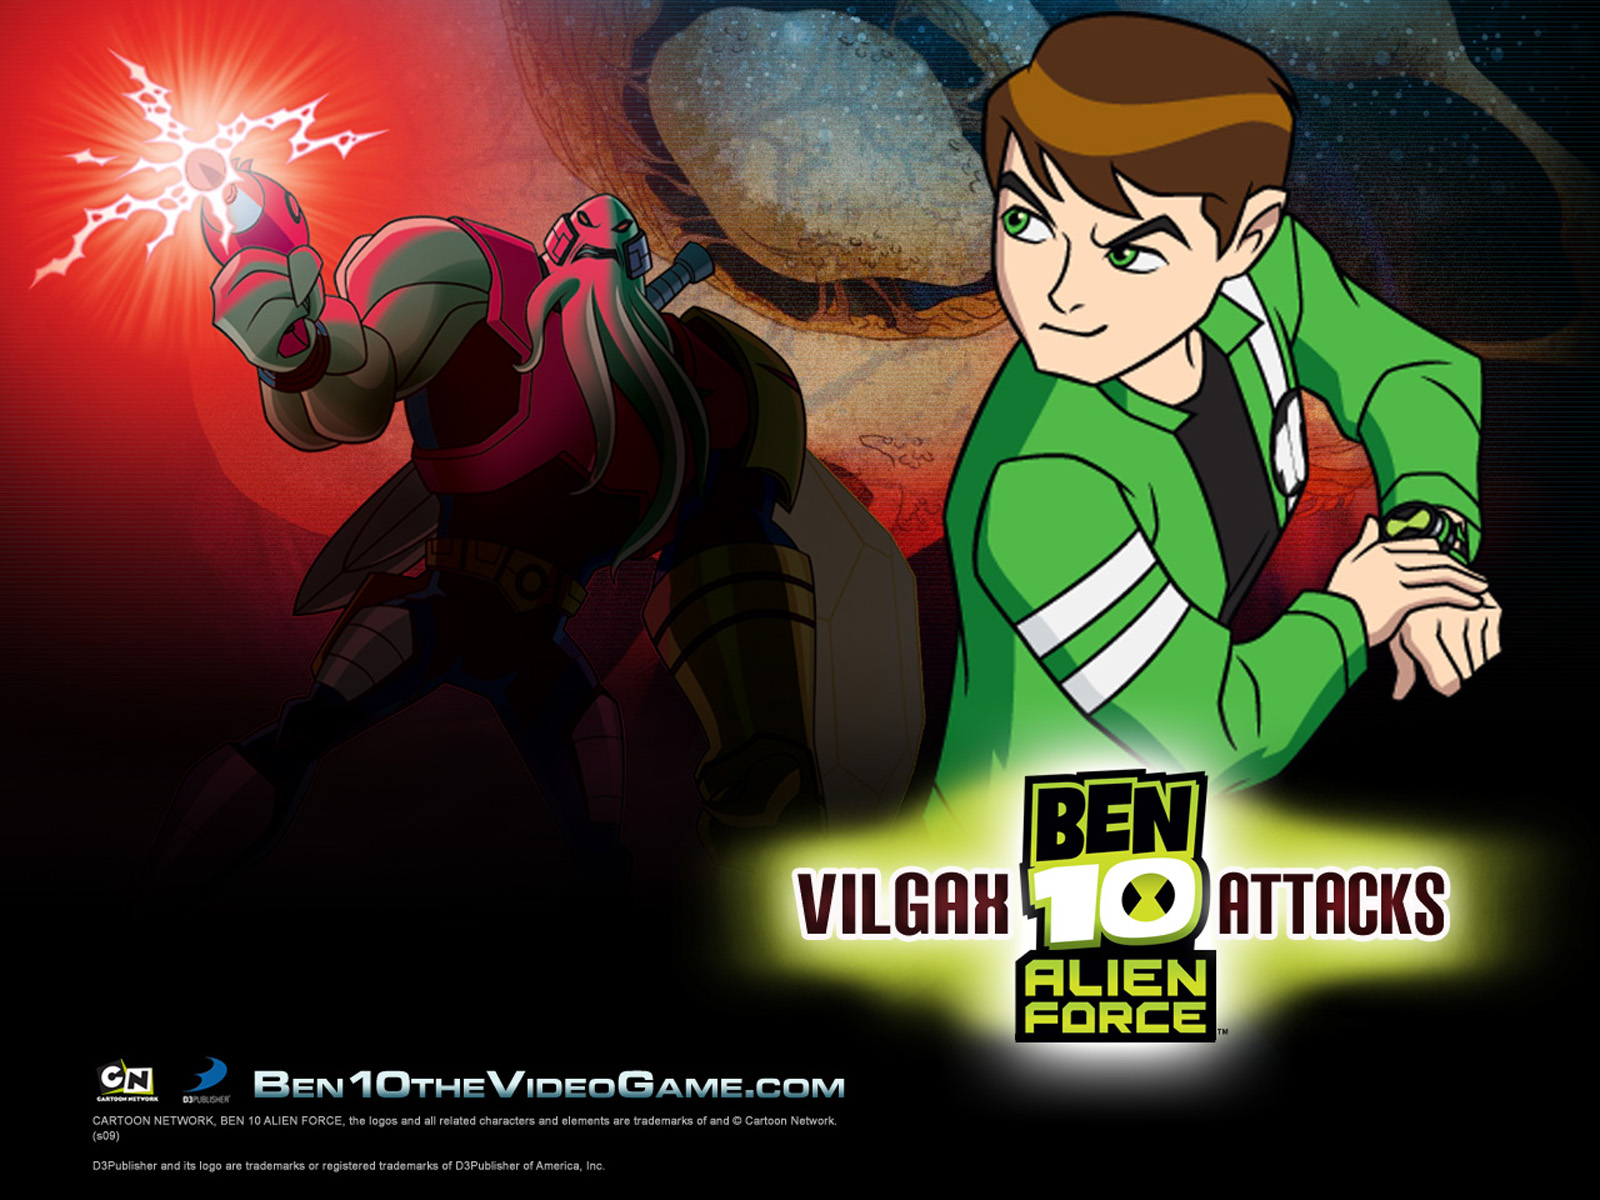 http://2.bp.blogspot.com/-_64BLWkiHEs/Tg9B7YjLOgI/AAAAAAABCMU/PSRaamUiolQ/s1600/ben-10-alien-force-vilgax-attacks-wallpaper-2-1600x1200.jpeg